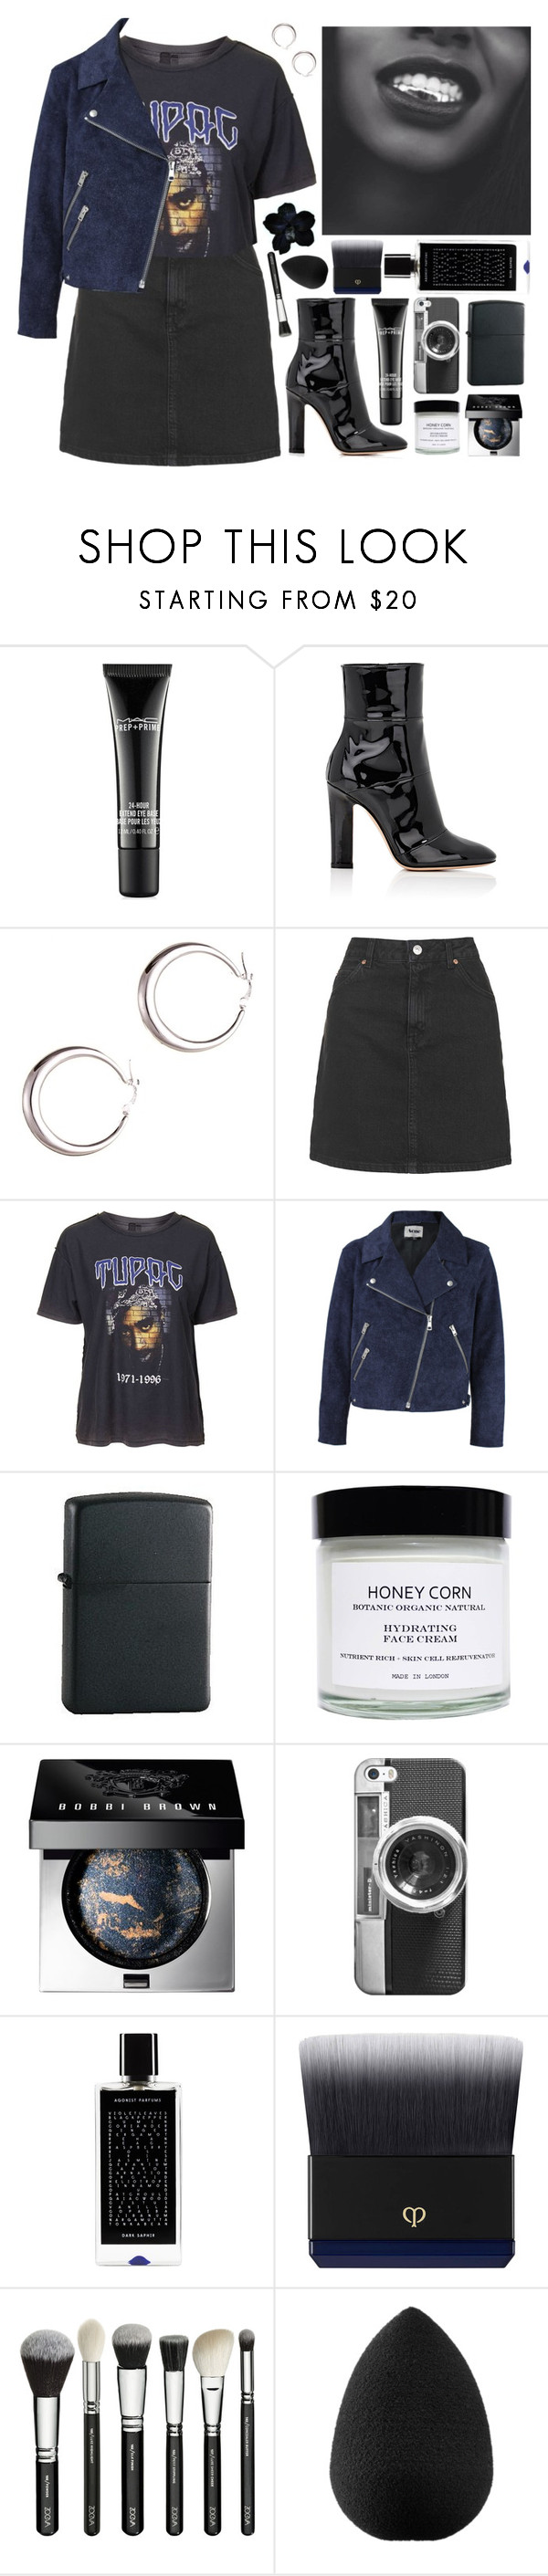 """2pac"" by s-ensible ❤ liked on Polyvore featuring MAC Cosmetics, Gianvito Rossi, Topshop, Acne Studios, Zippo, Honey Corn, Bobbi Brown Cosmetics, Casetify, Agonist and Clé de Peau Beauté"